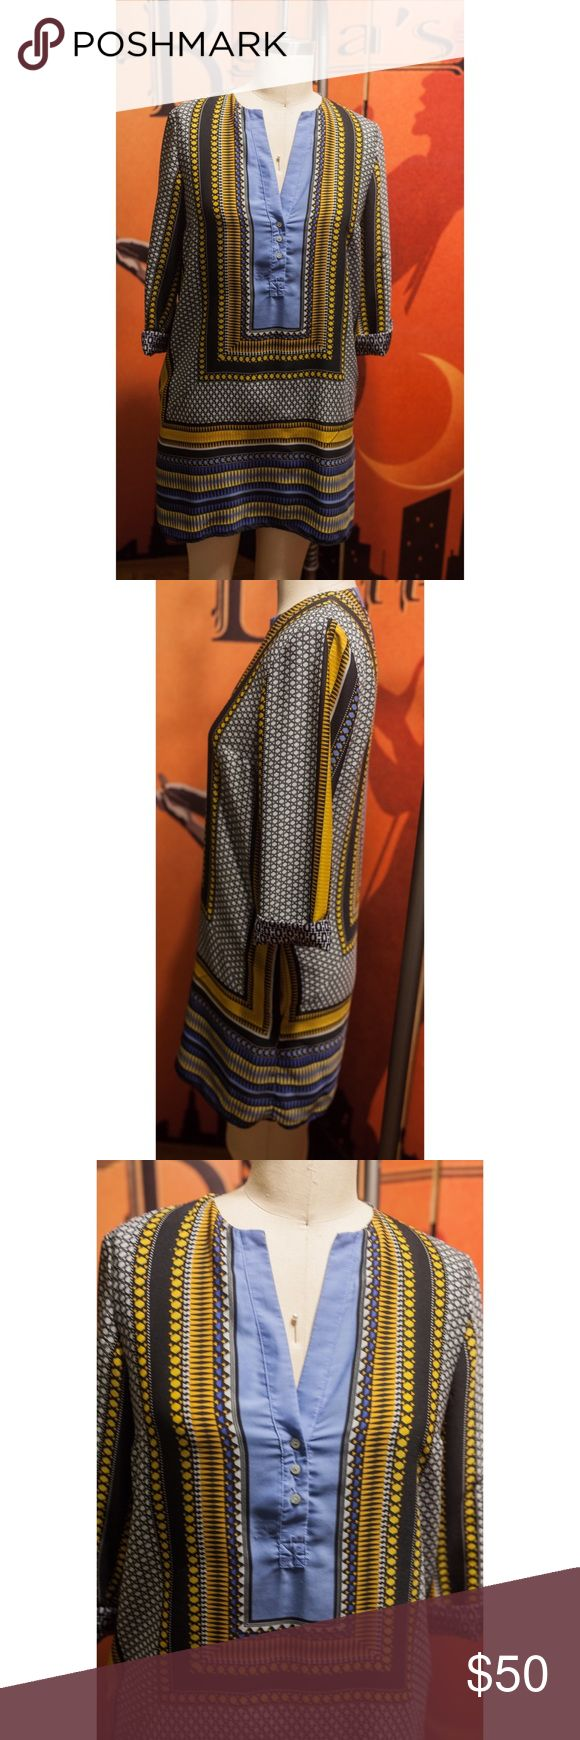 """Zara Tunic/Dress Size M/6 20% off Labor Day sale LABOR DAY SALE BUY 2 OR MORE ITEMS GET 20% OFF! I'm selling a nice condition, medium sized(fits like a 6), Zara Tunic from a few years ago. Was in the dress section, so technically can be worn as one. For length reference I'm 5'7"""" and it comes a little above my knees. Always received comments when worn just not my style anymore. Three quarter sleeves with sewn in cuff. Has pockets but don't expect to put too much in them haha. Condition…"""